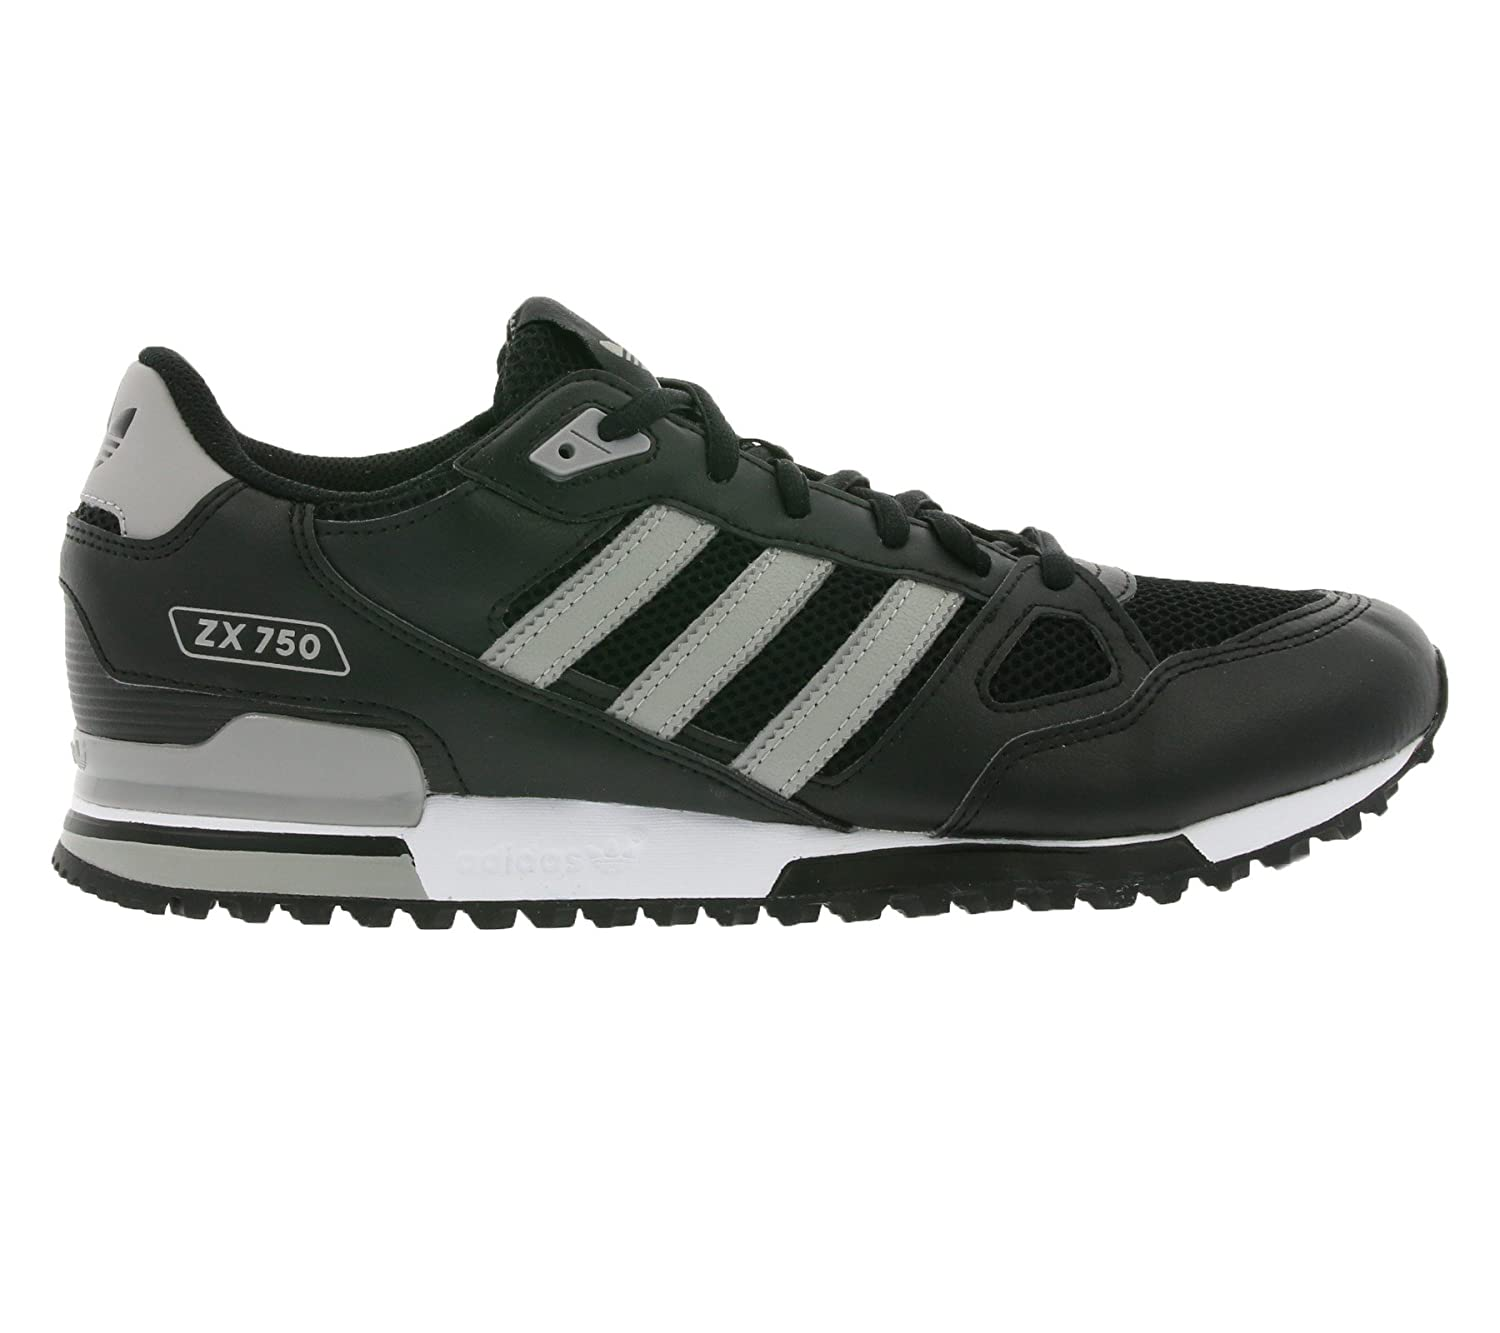 Zapatillass ZX 750 core black/mgh solid grey/mgh solid 16/17 Adidas Originals 42 core black/mgh solid grey/mgh solid: Amazon.es: Zapatos y complementos